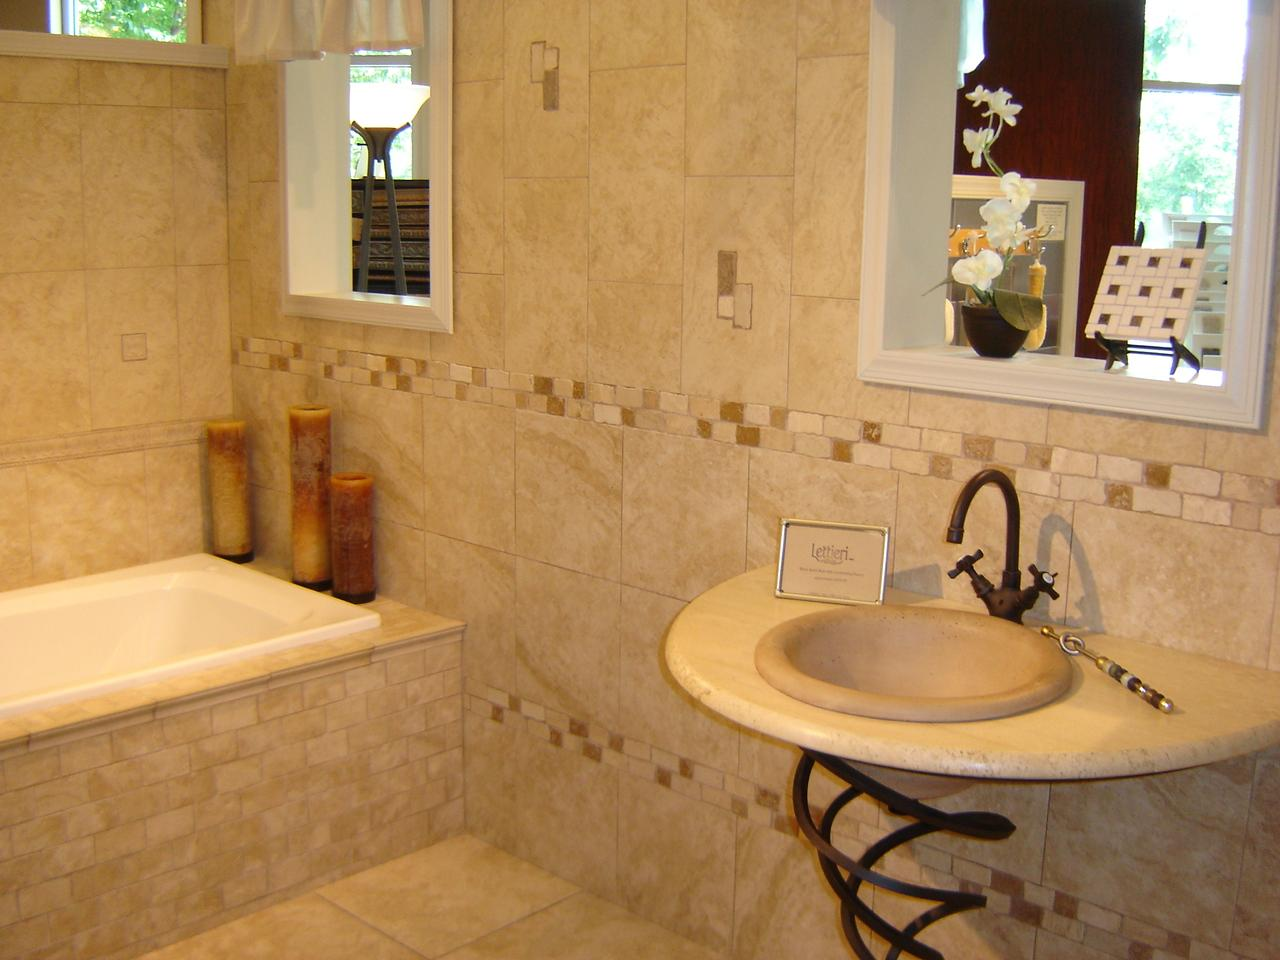 Bathroom tile design ideas Bathroom shower tile designs